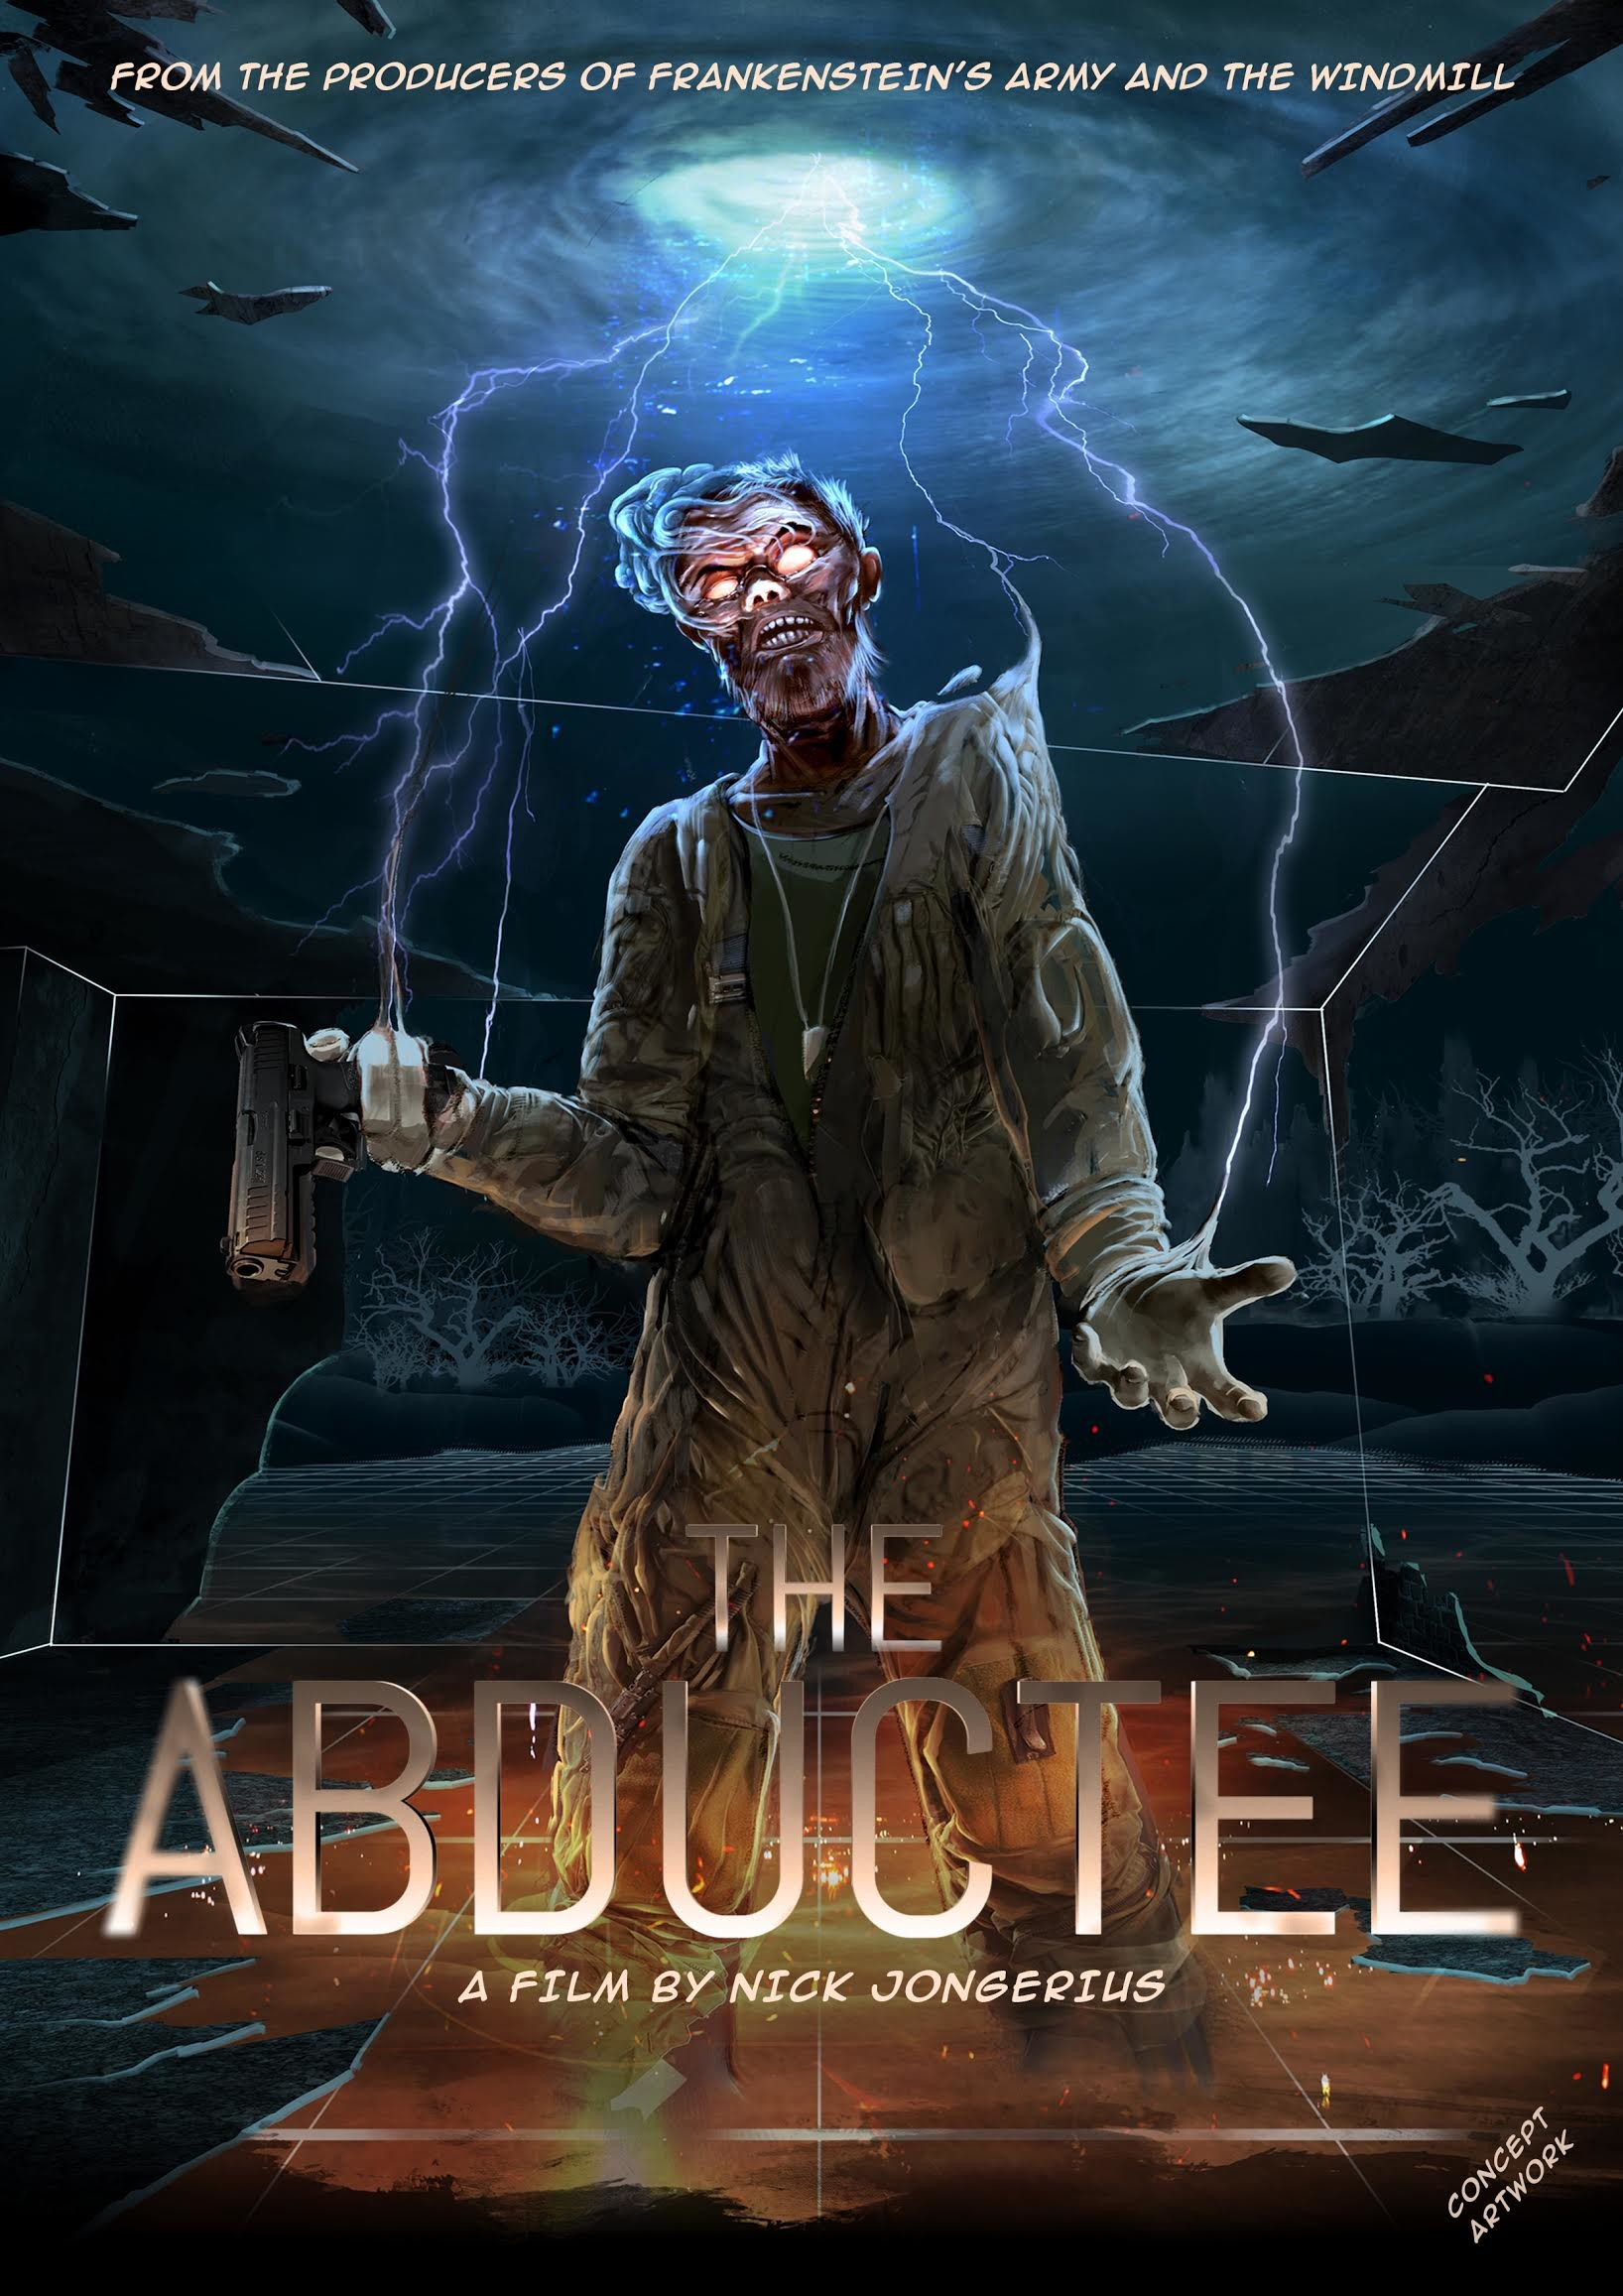 The Abductee Concept art